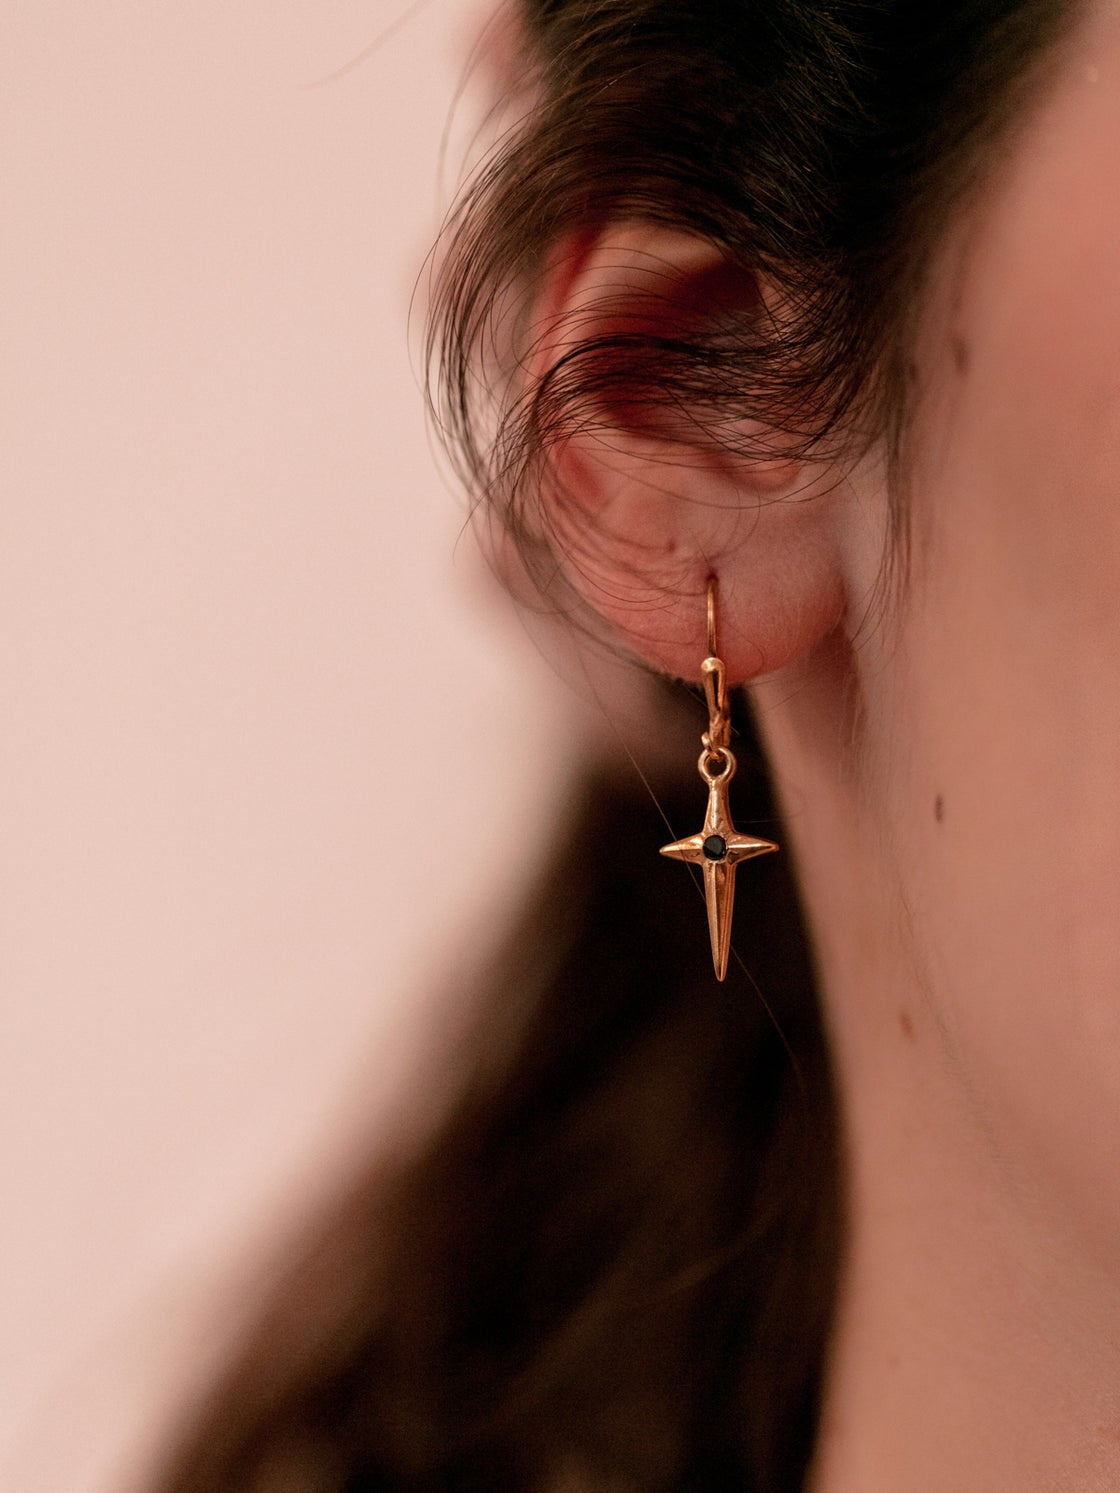 Image of DONIA boucle d'oreille  Gold Onyx noir